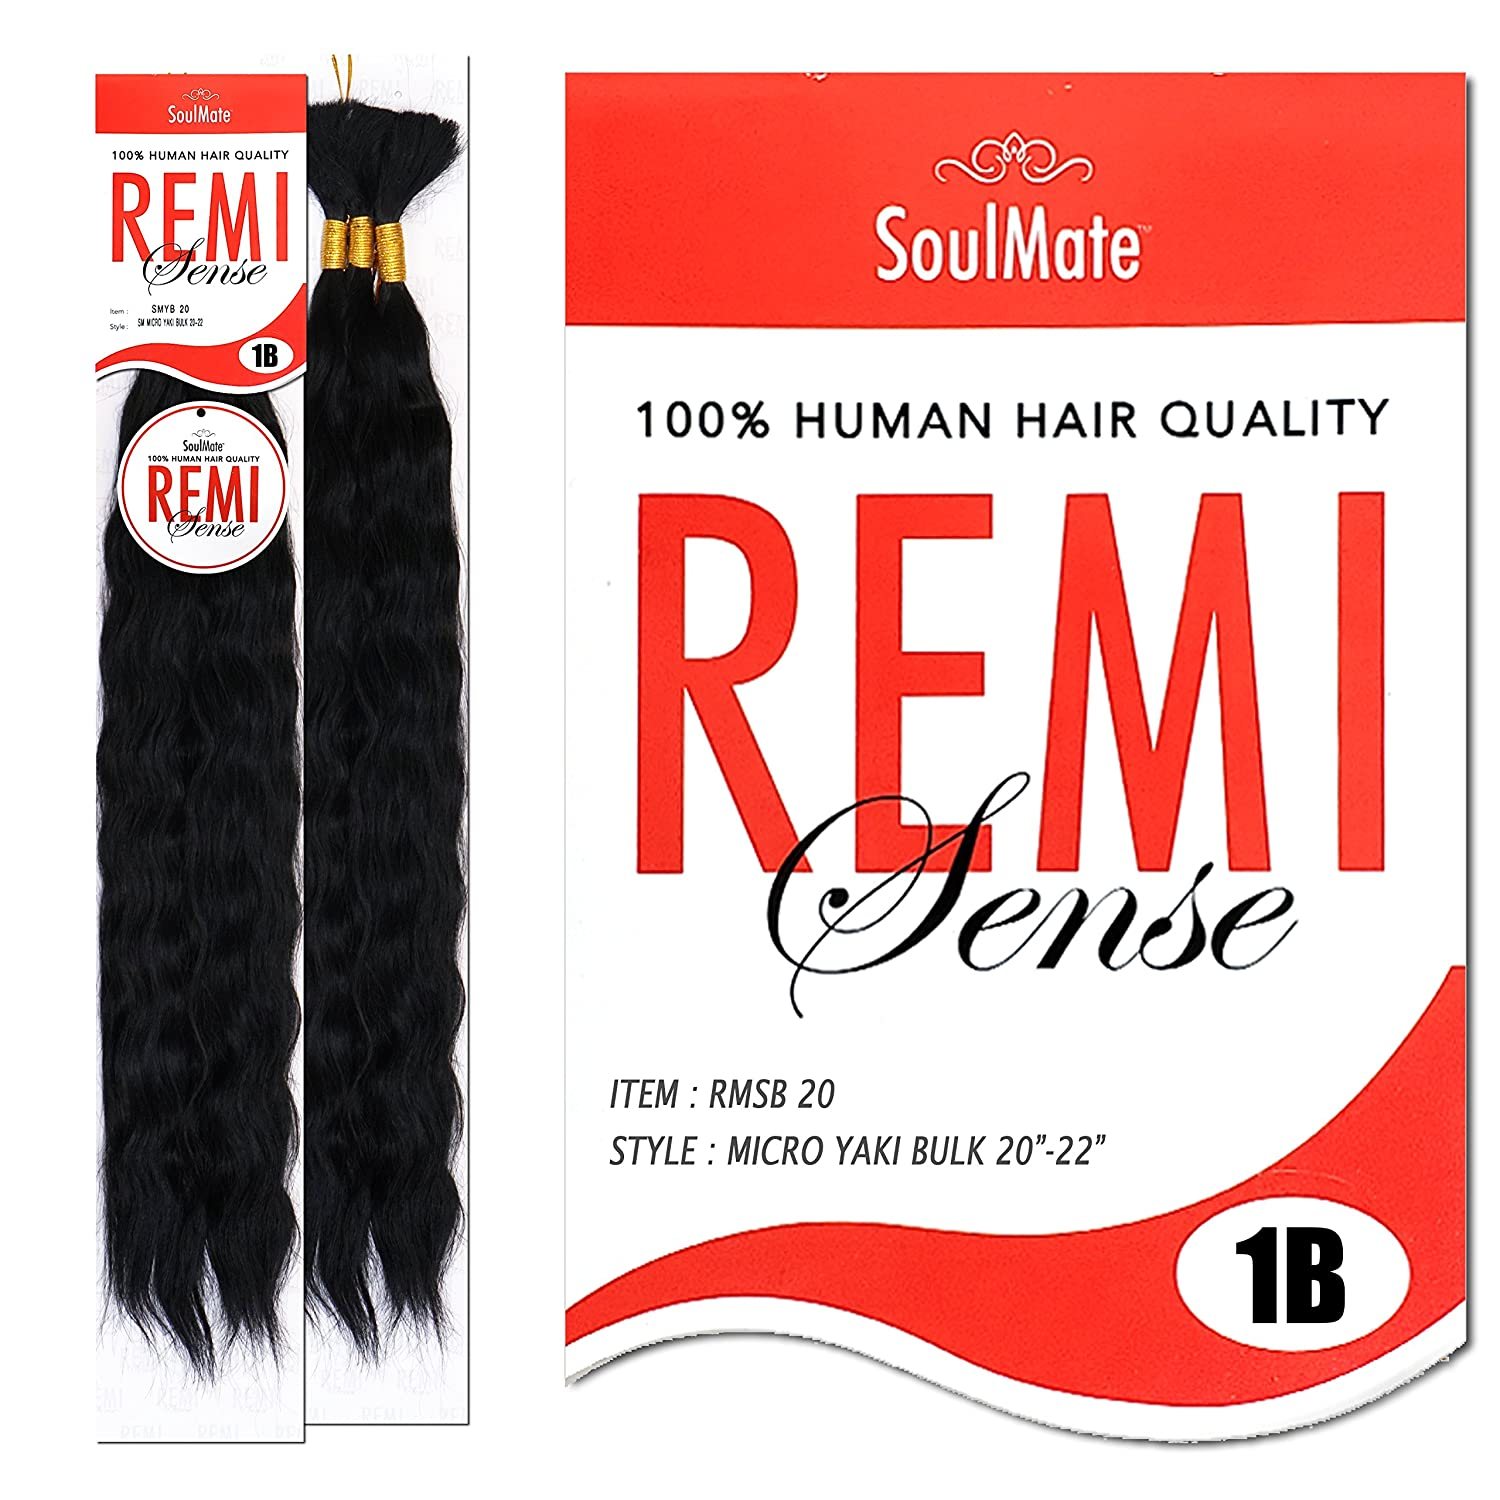 [2PACKS DEAL] SOULMATE REMI SENSE Human Hair Blend Micro Braid Wet & Wavy 20-22 - RMSB 20 (1B [Off Black]) Hair Line